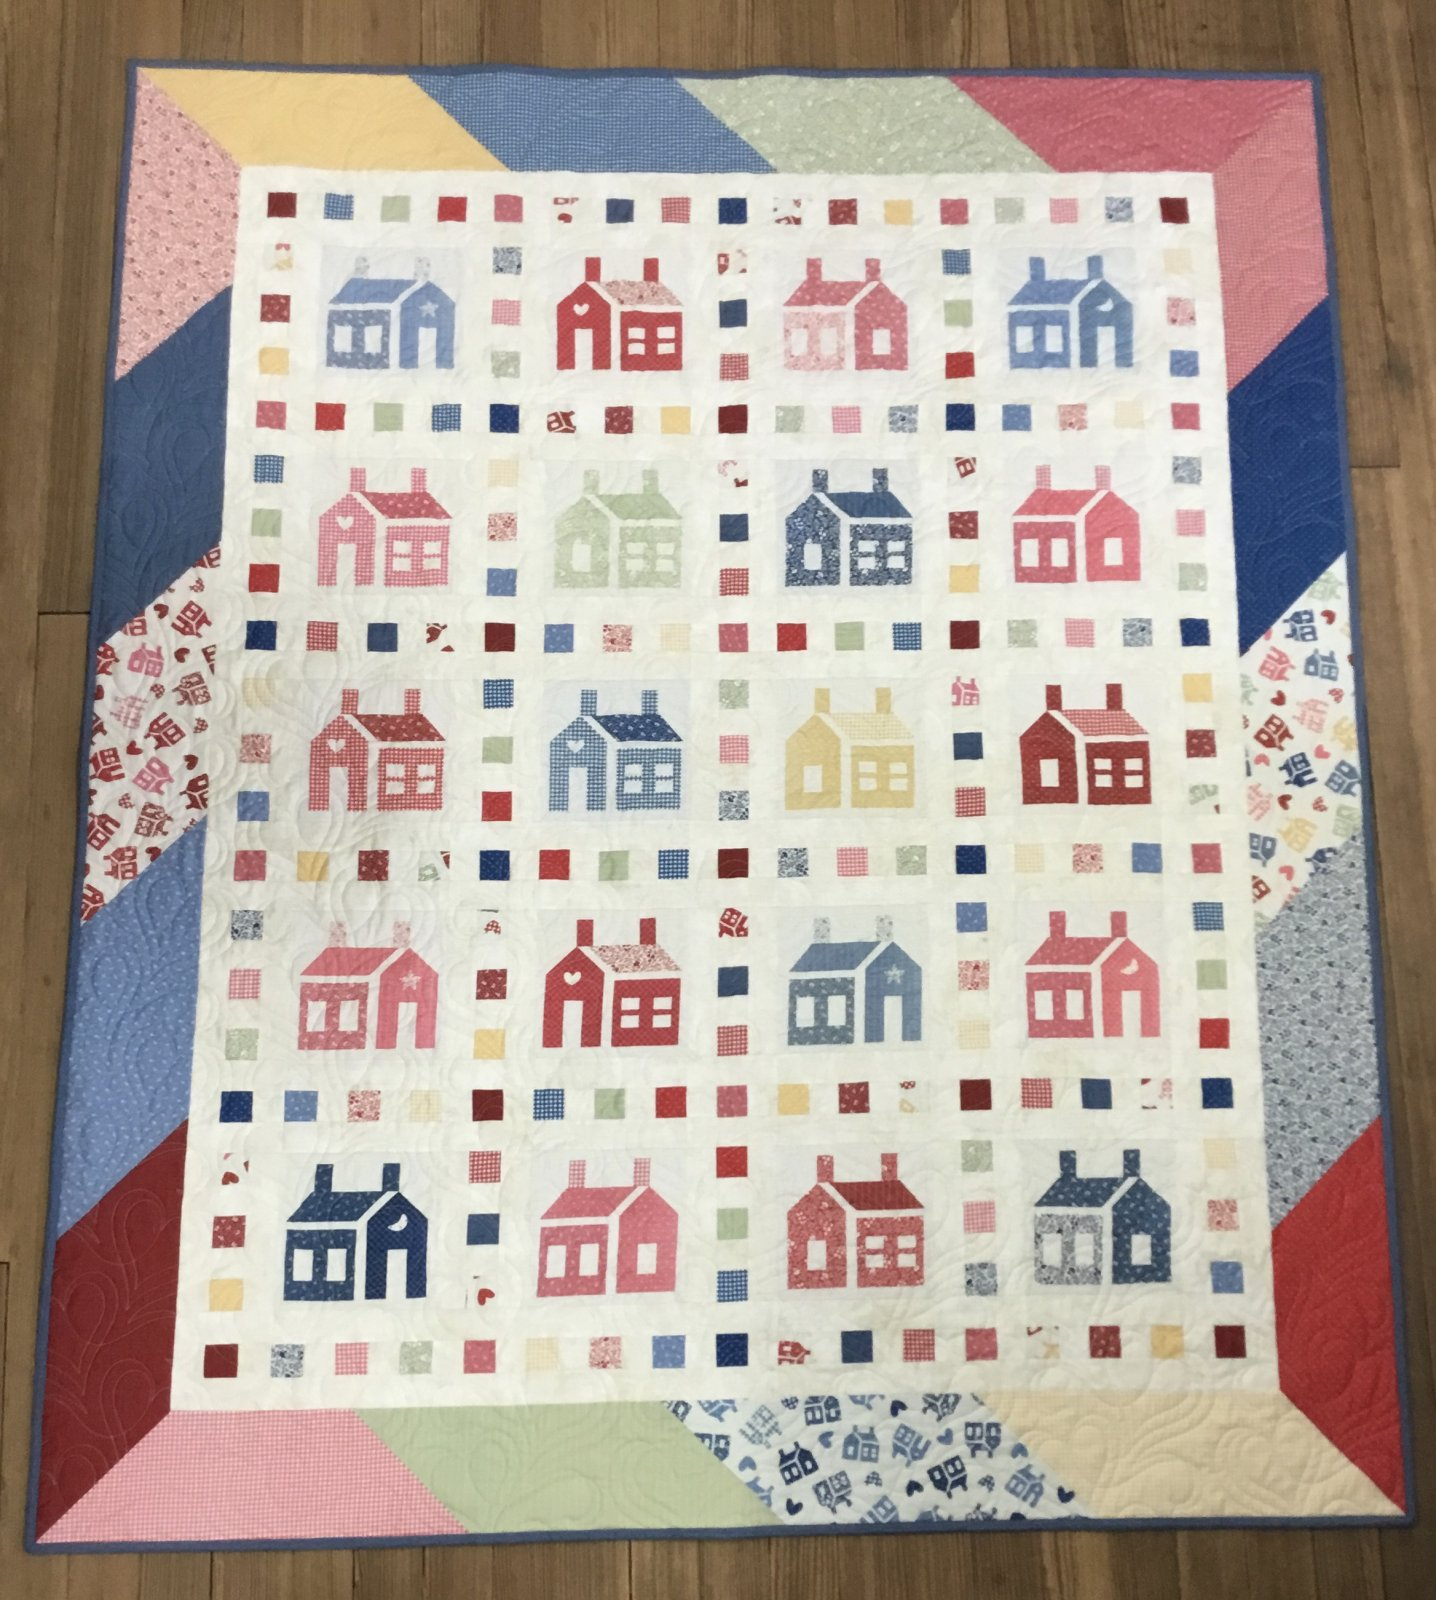 One-Room Schoolhouse Slide Show Lap Quilt Kit